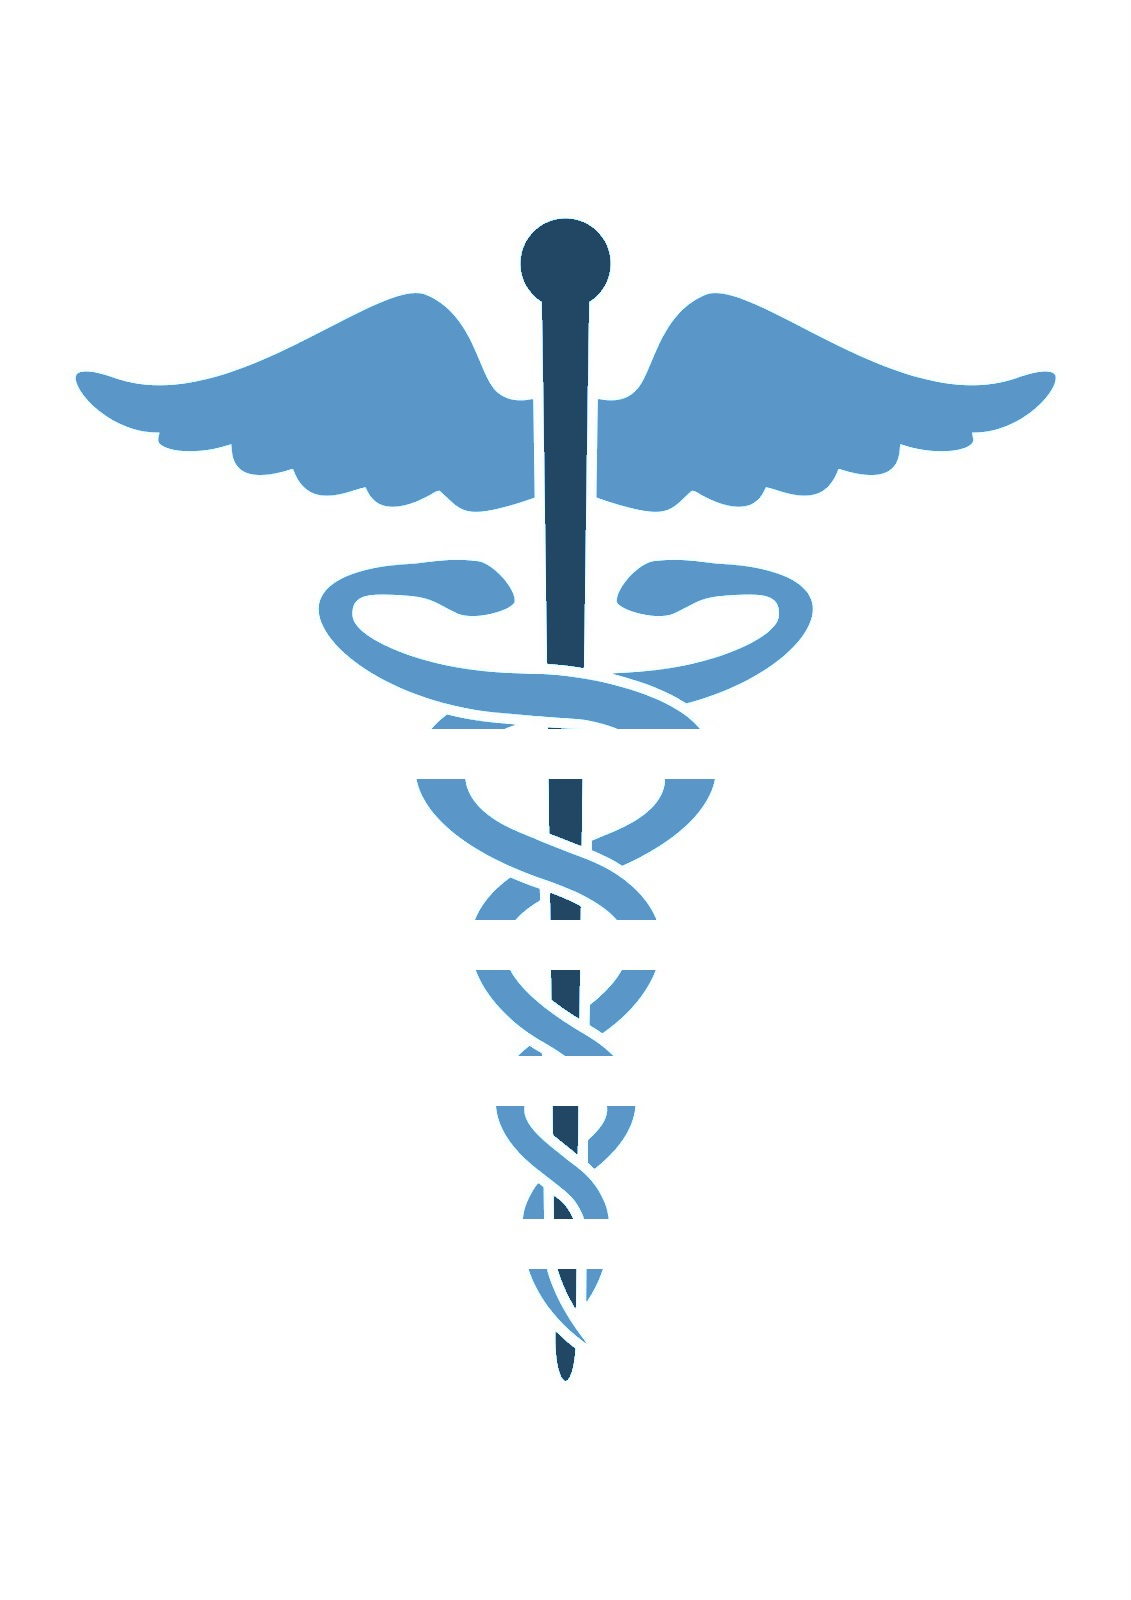 Healthcare Symbol with Gaps